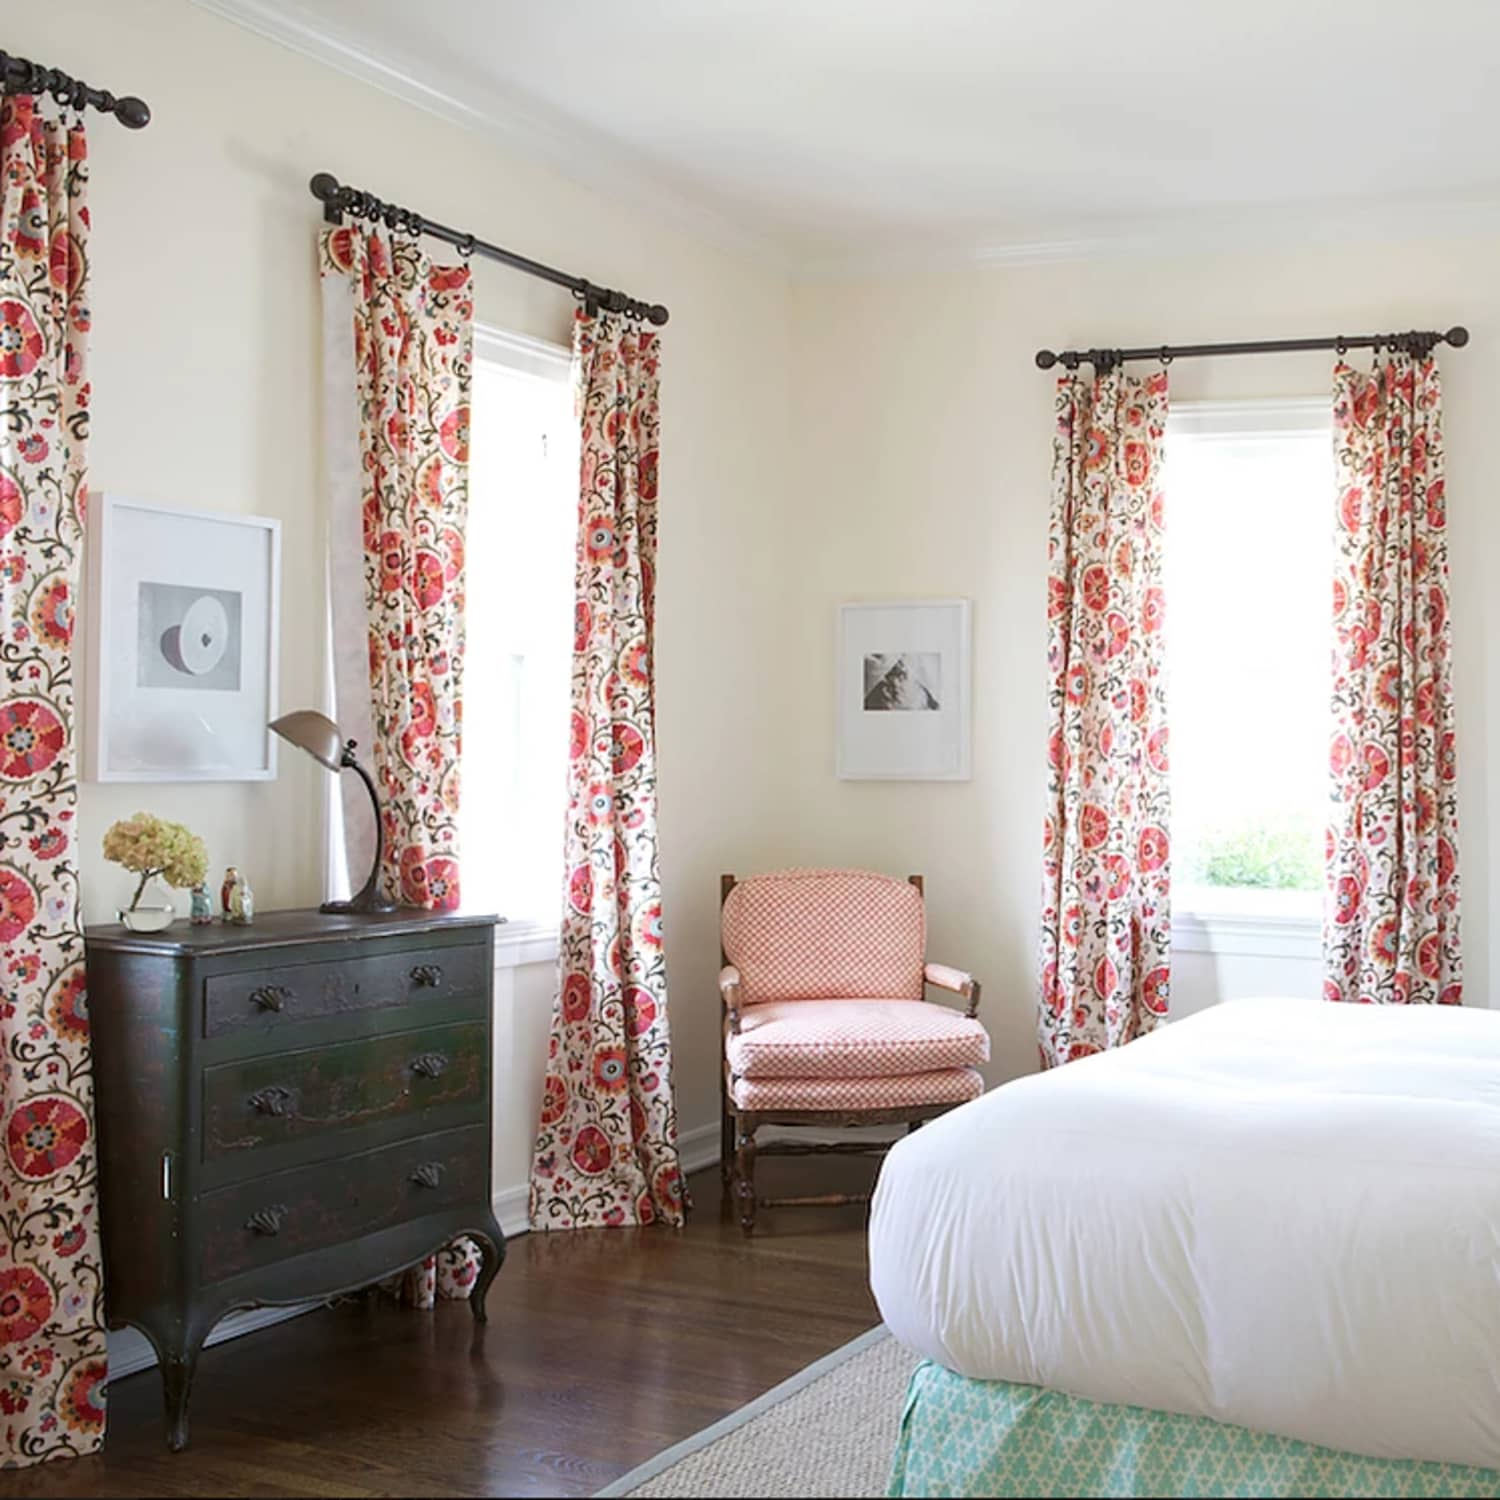 One Room Many Windows Pro Tips For Choosing Window Treatments Apartment Therapy